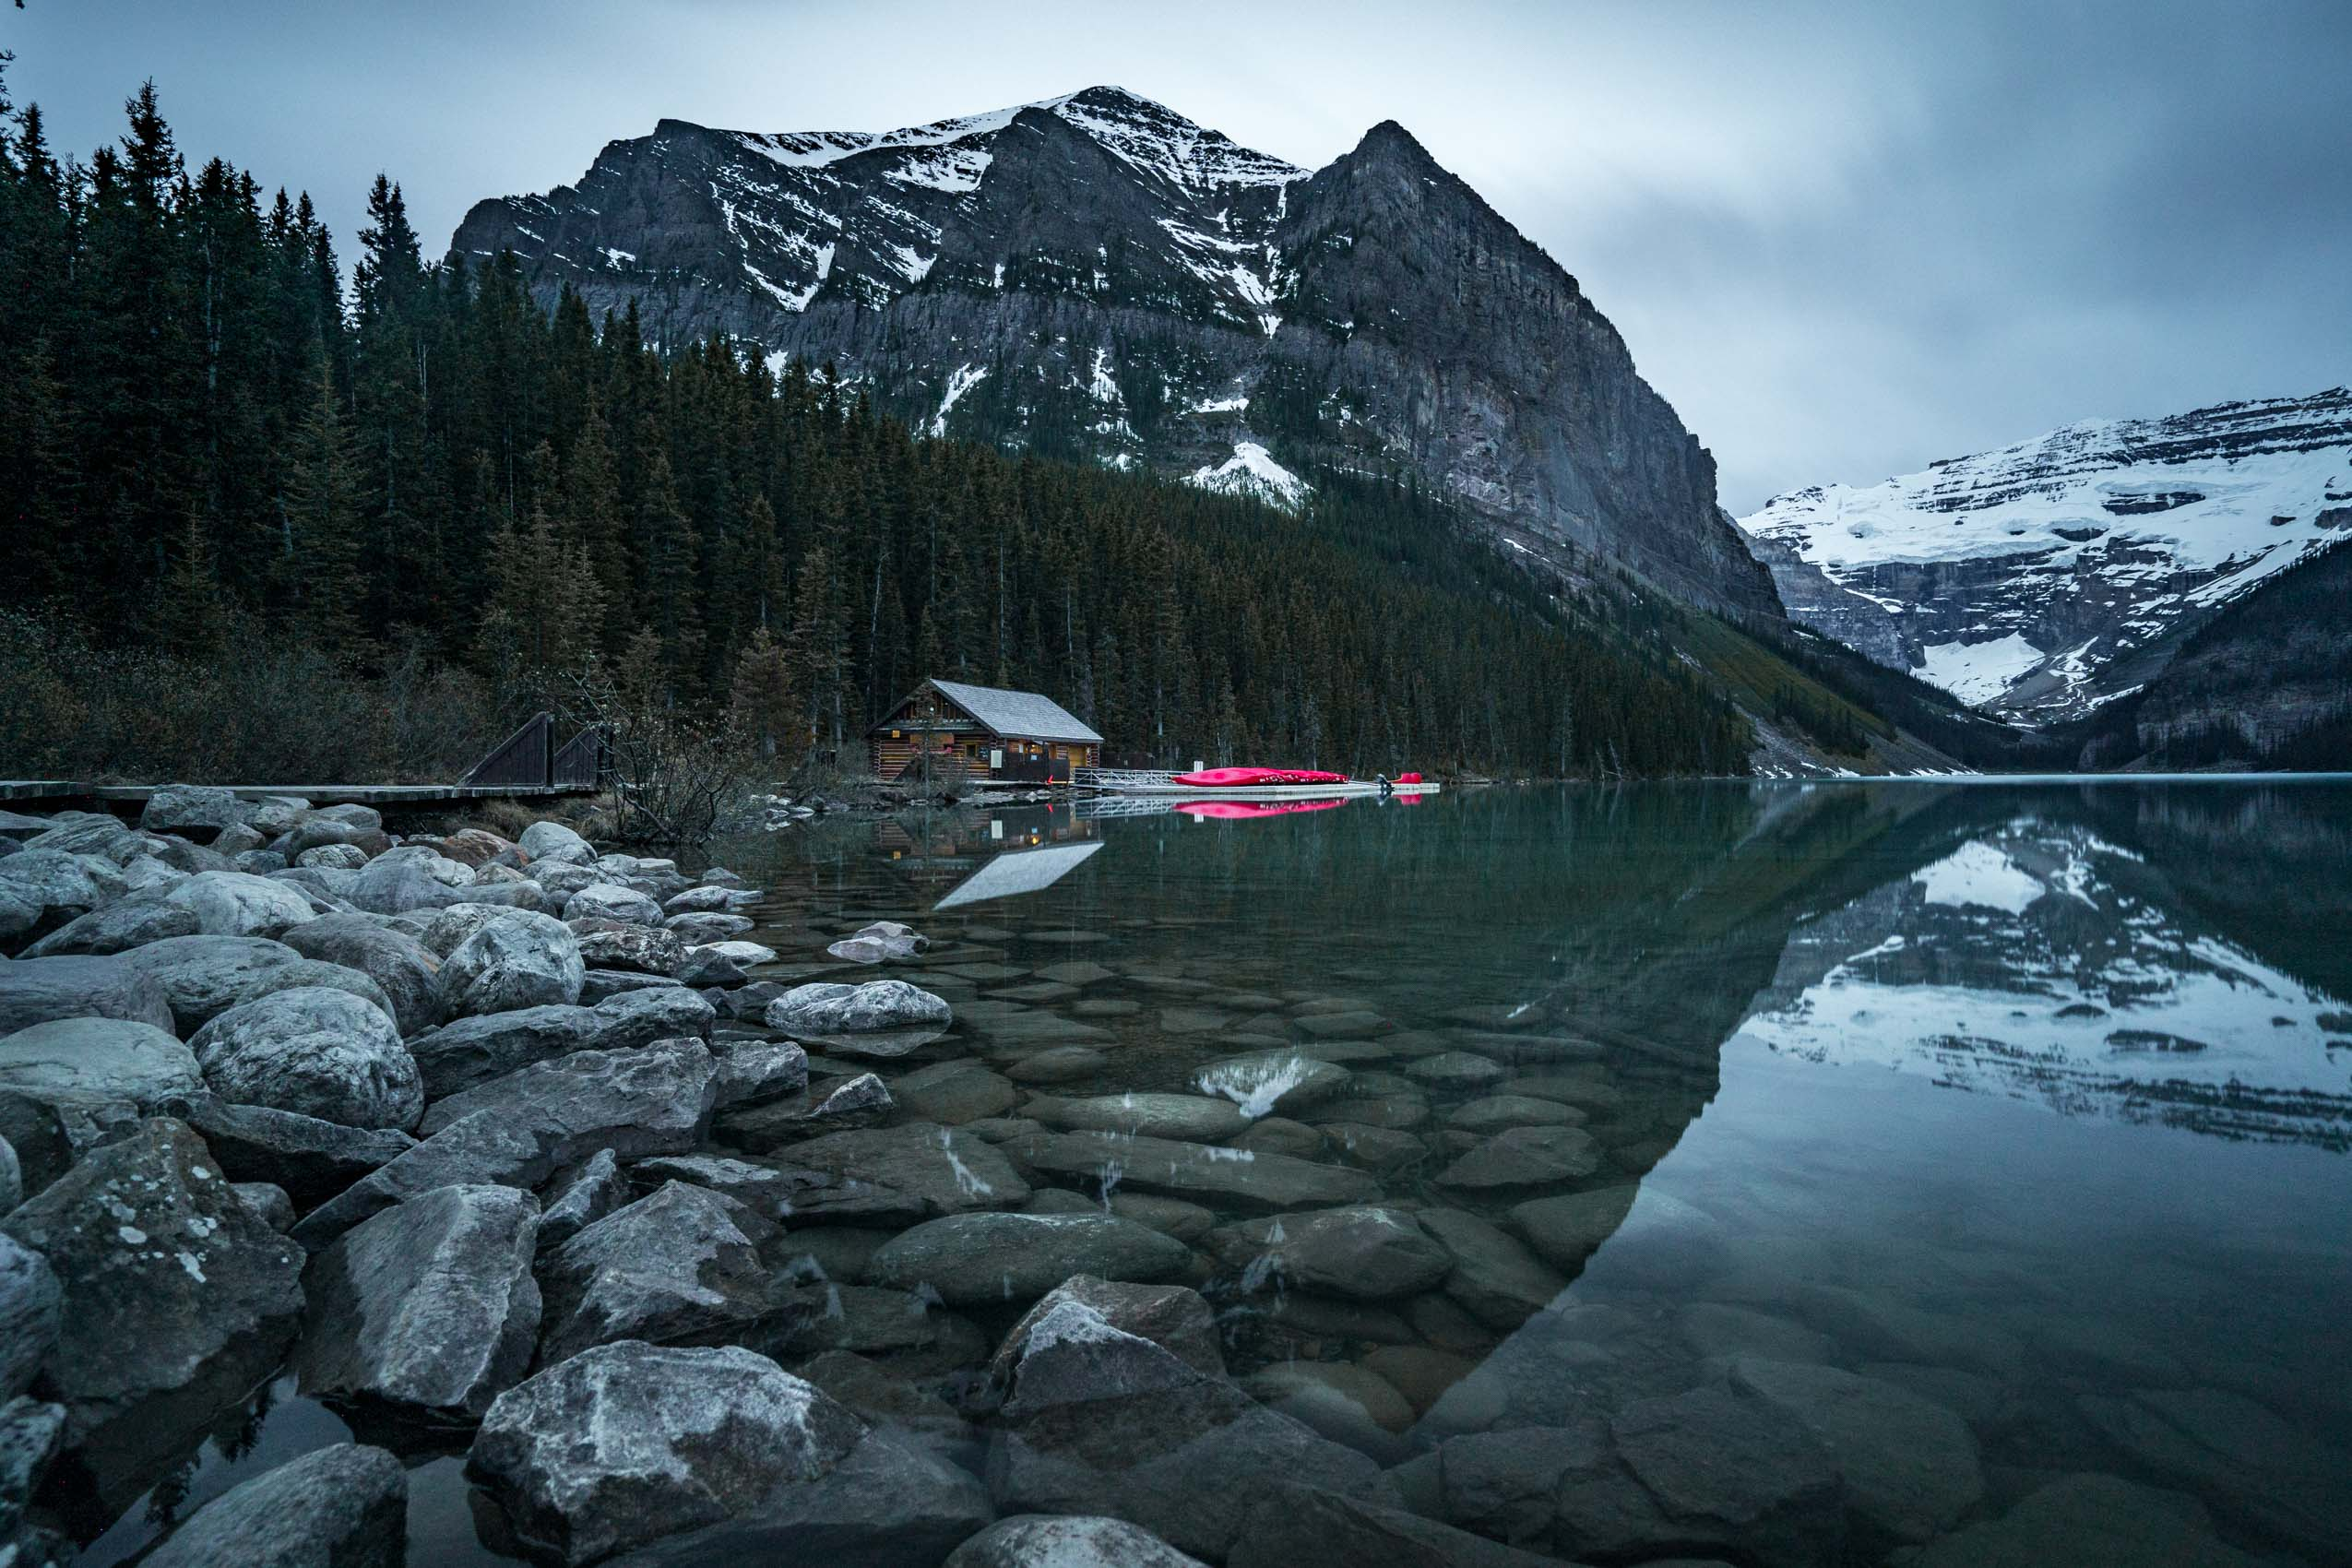 Lake Louise boathouse from Lake Louise shore Alberta Canada